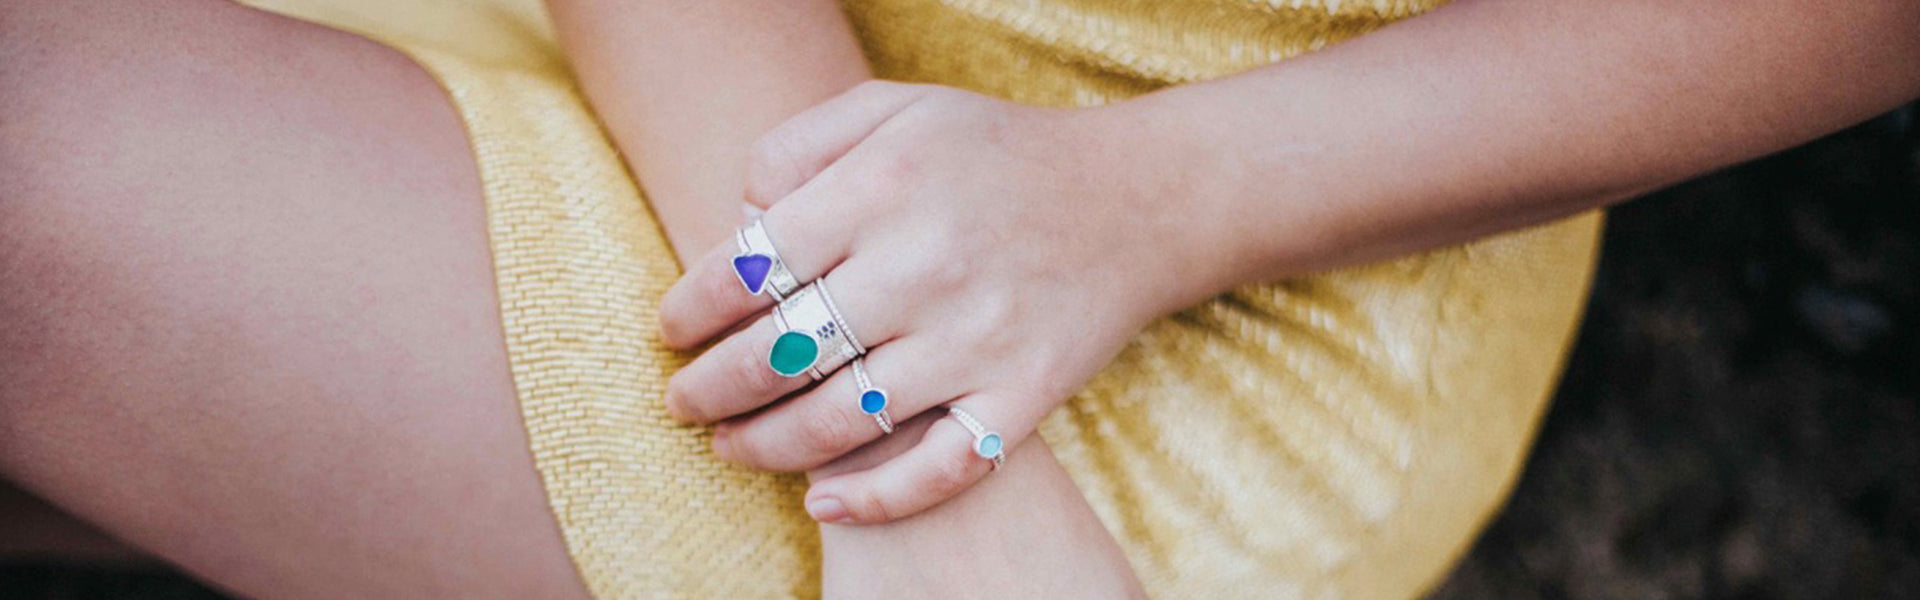 Jewellery – SurfGirl Beach Boutique - A Treasure Chest for Surf Girls